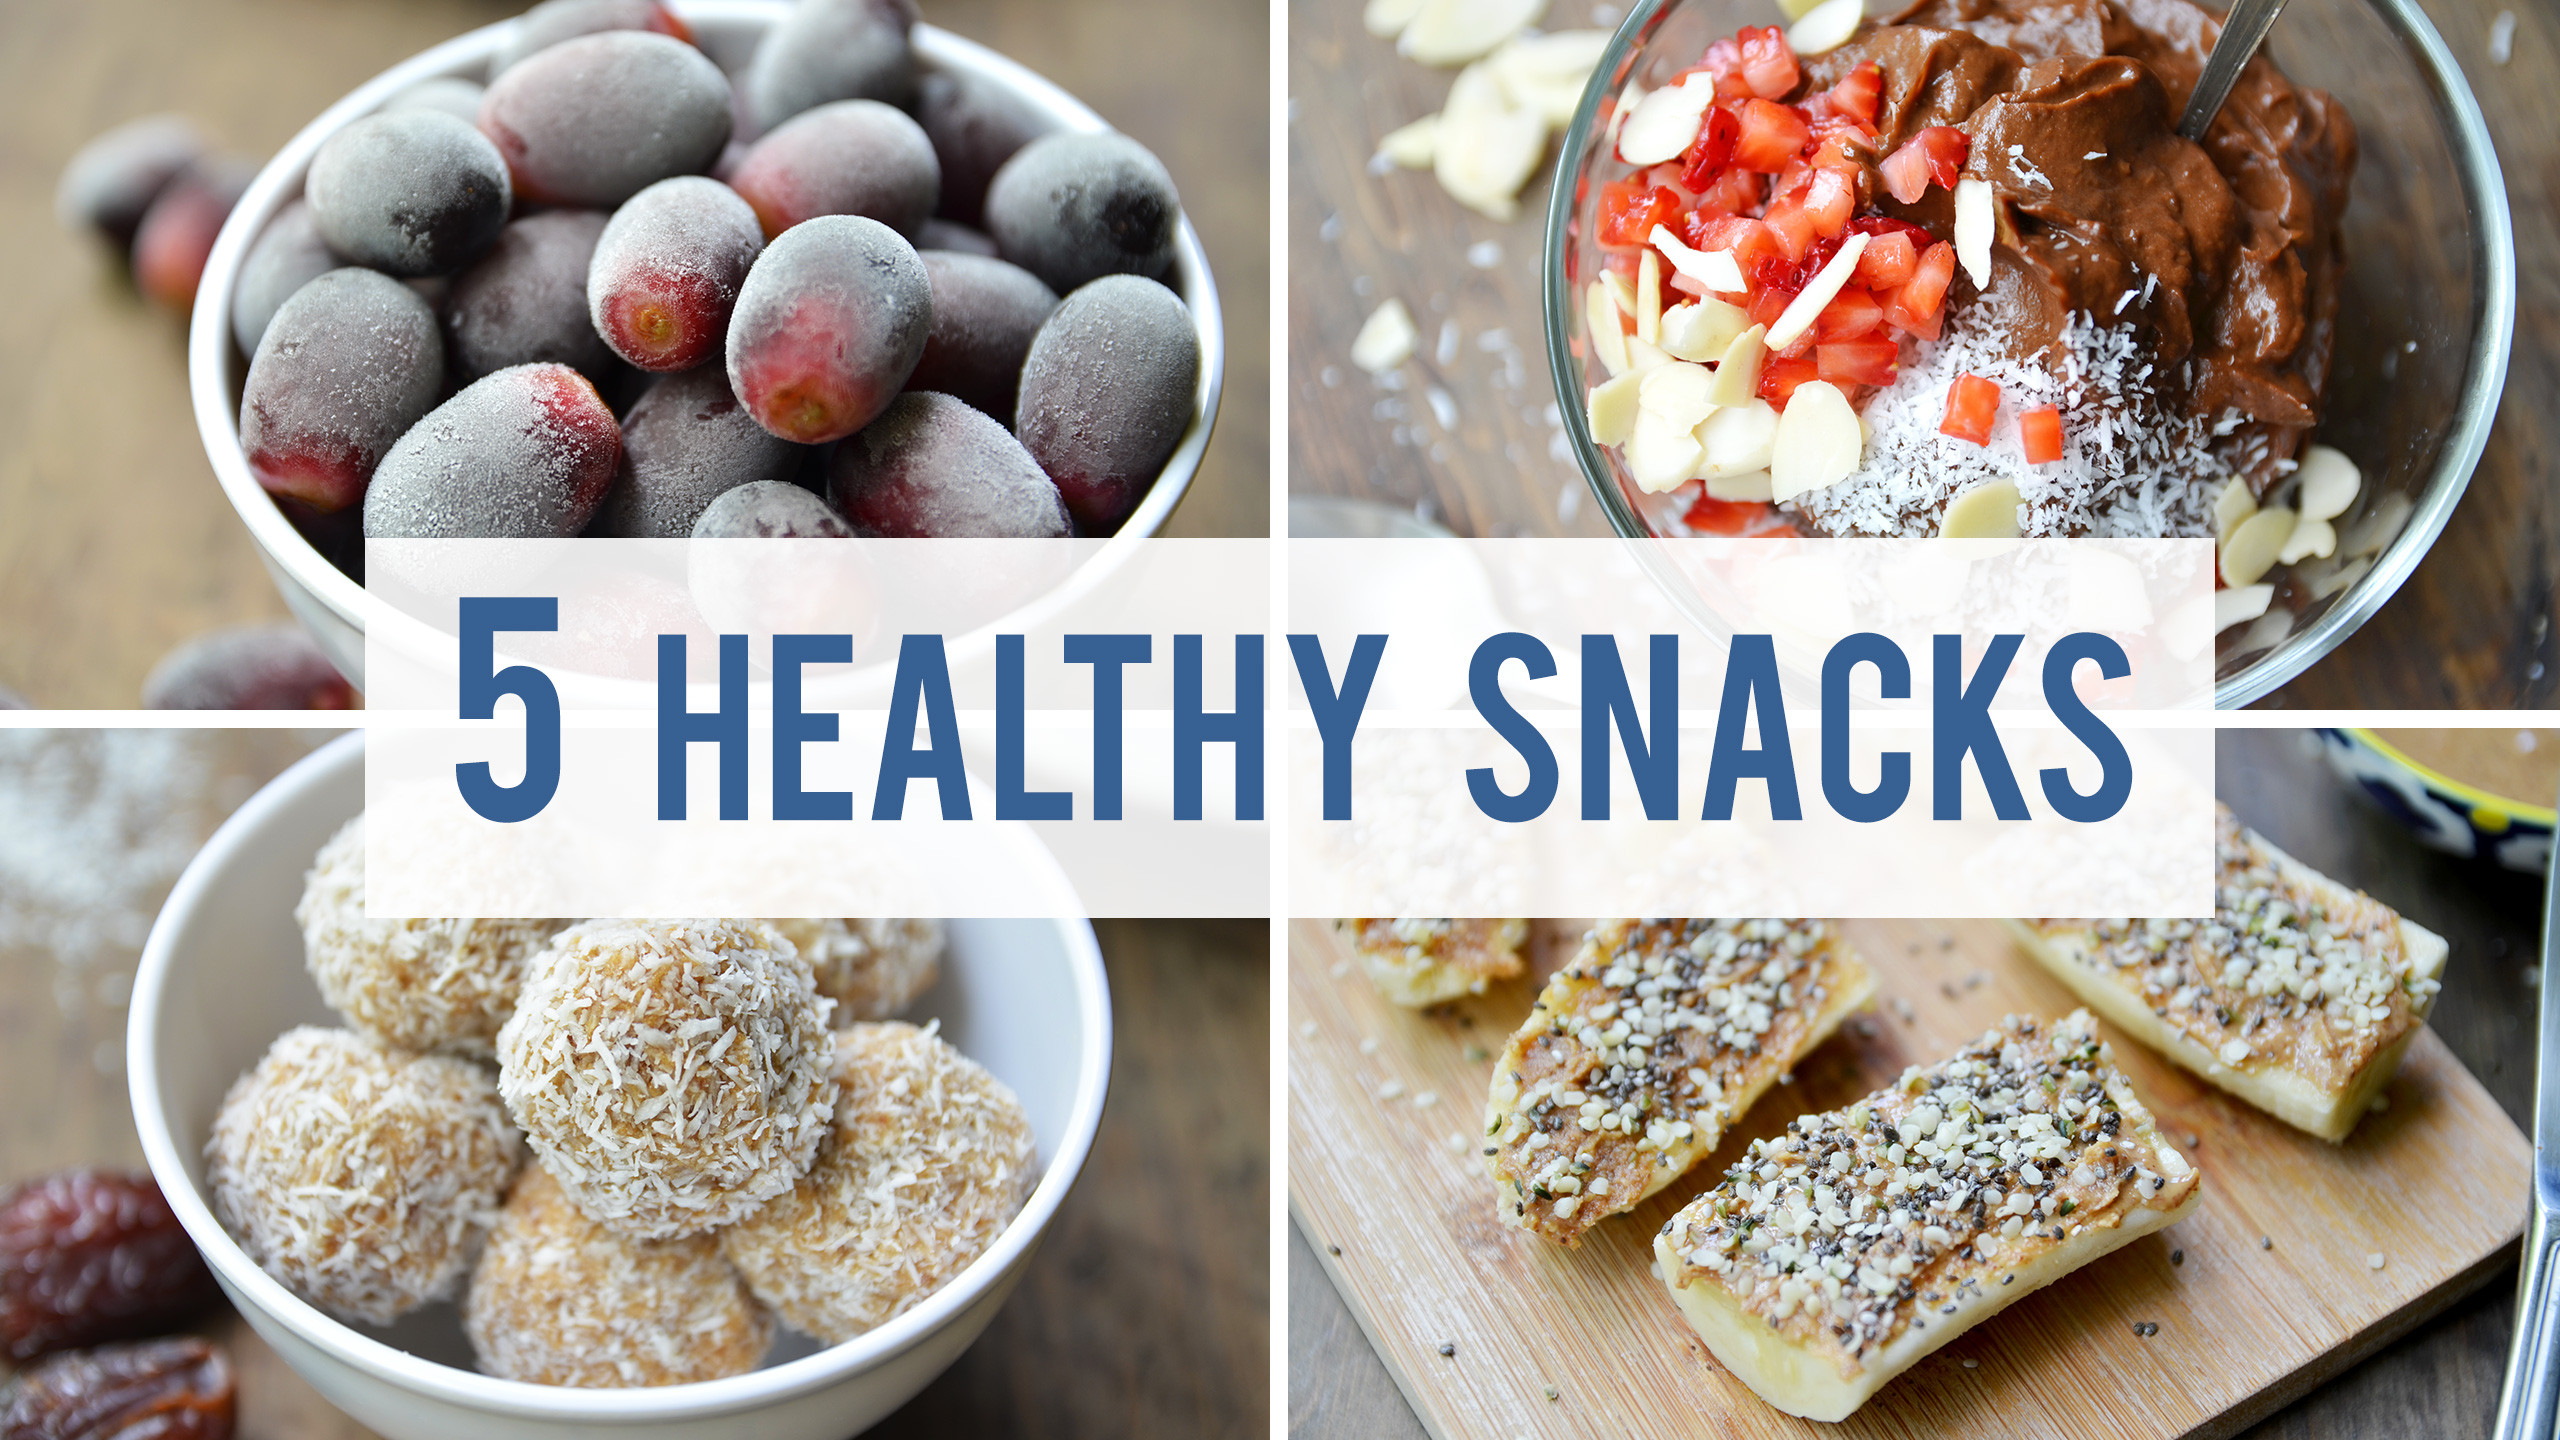 Healthy Snacks For Sweet Tooth  5 Healthy Snacks For Your Sweet Tooth Fablunch